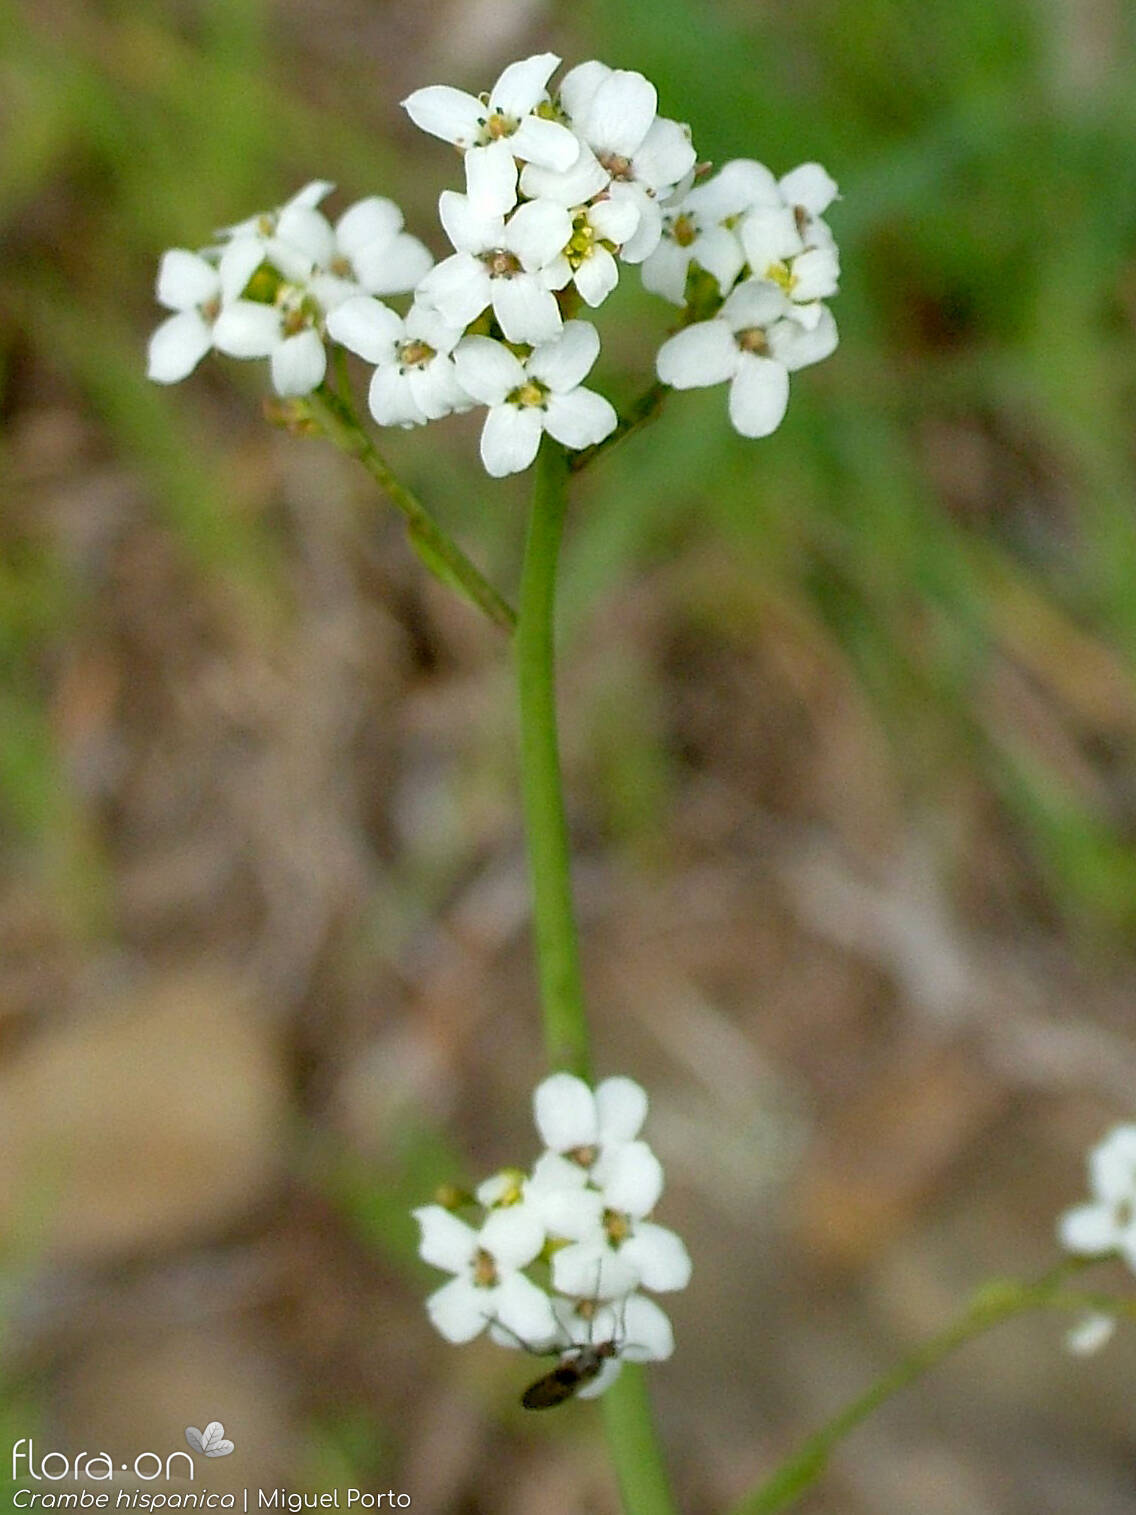 Crambe hispanica - Flor (geral) | Miguel Porto; CC BY-NC 4.0